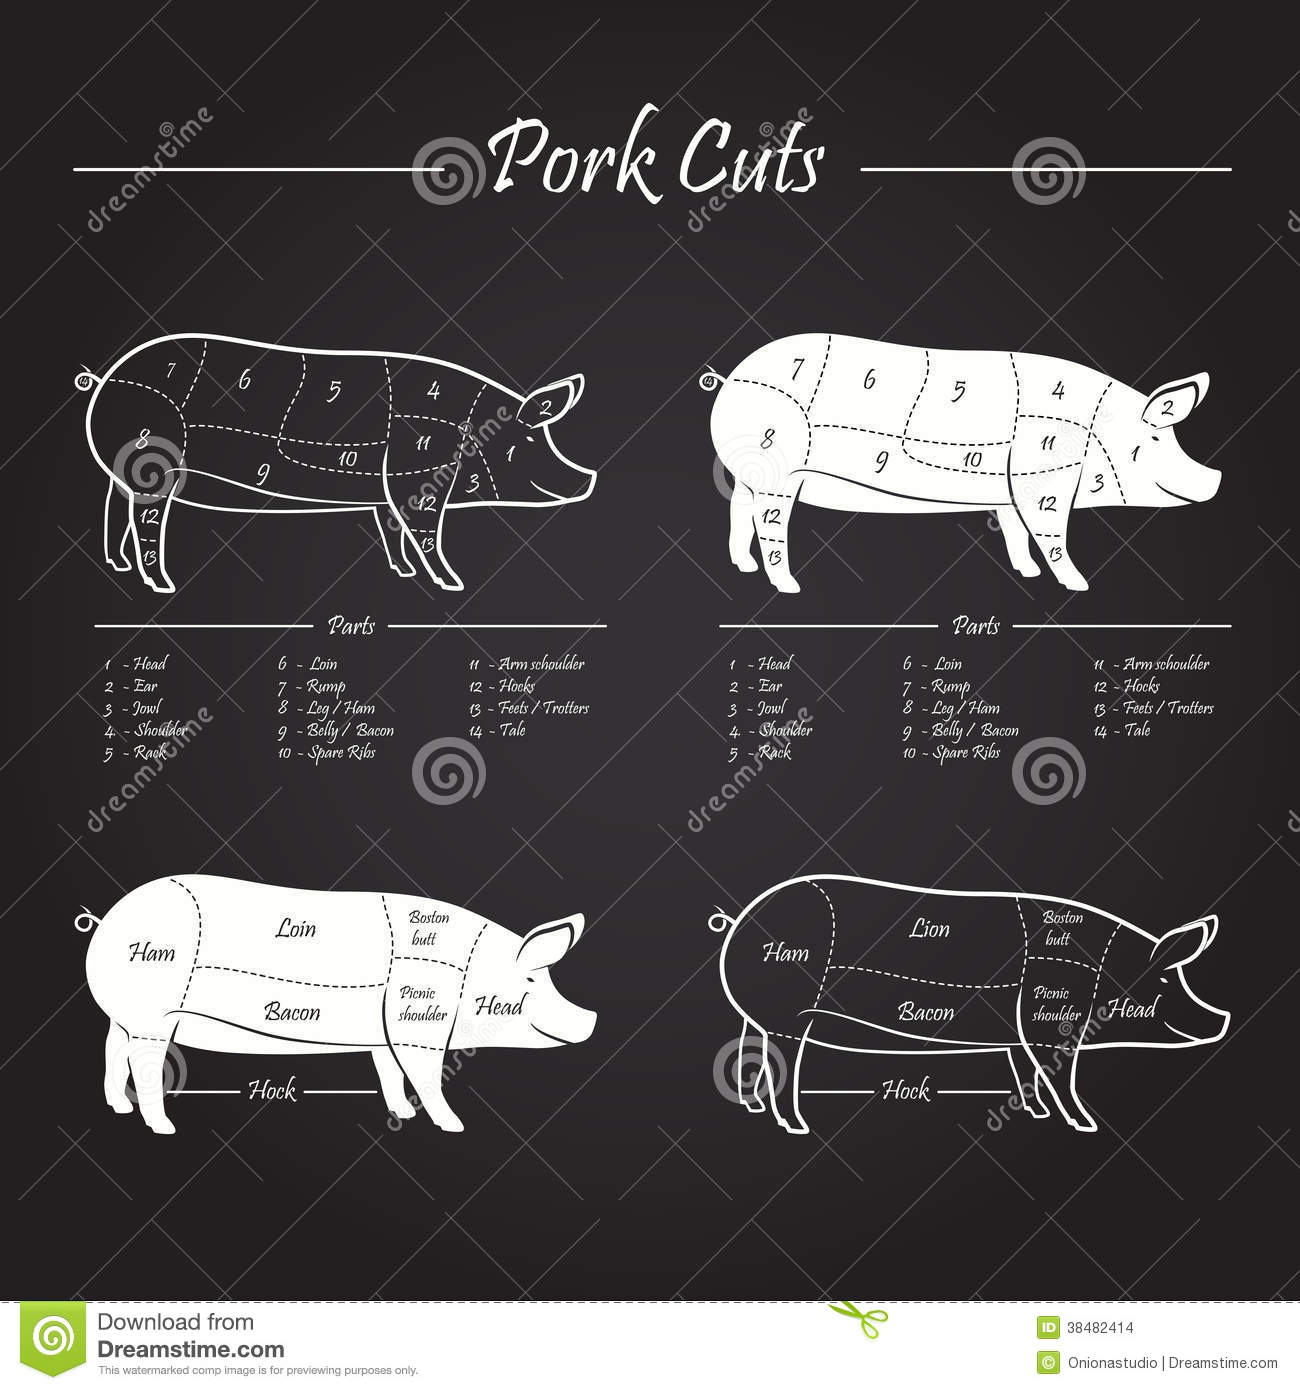 pig cuts diagram wiring fog lights without relay pork meat scheme stock vector image of plan bacon